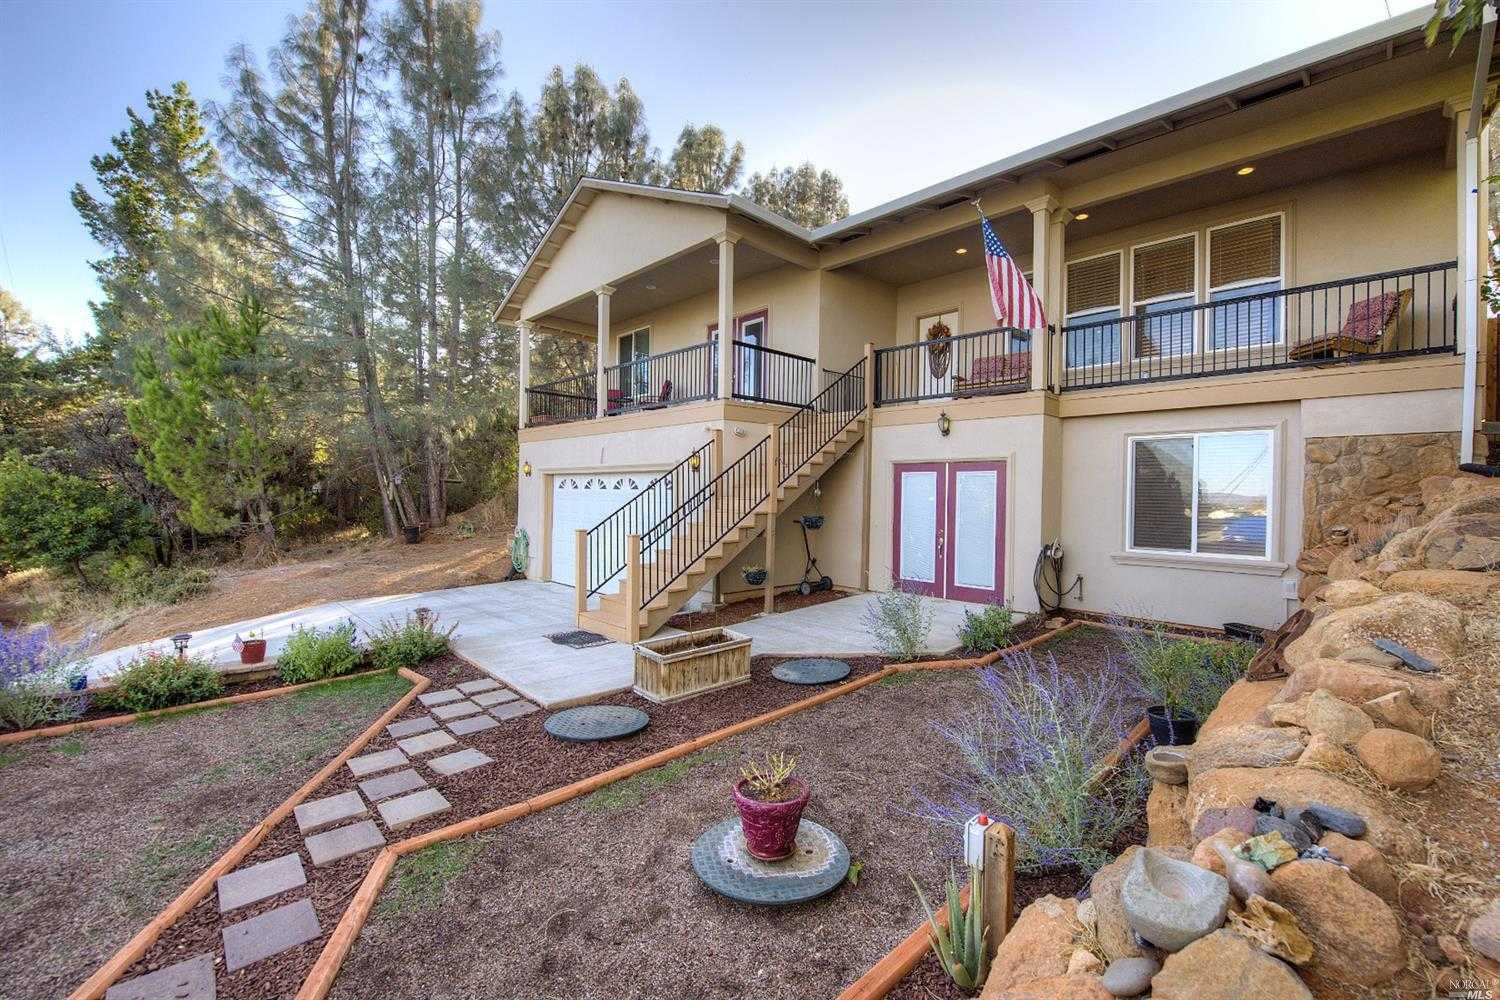 8195 oakley circle - Home For Sale Kelseyville Ca 95451 Paragon Real Estate Group